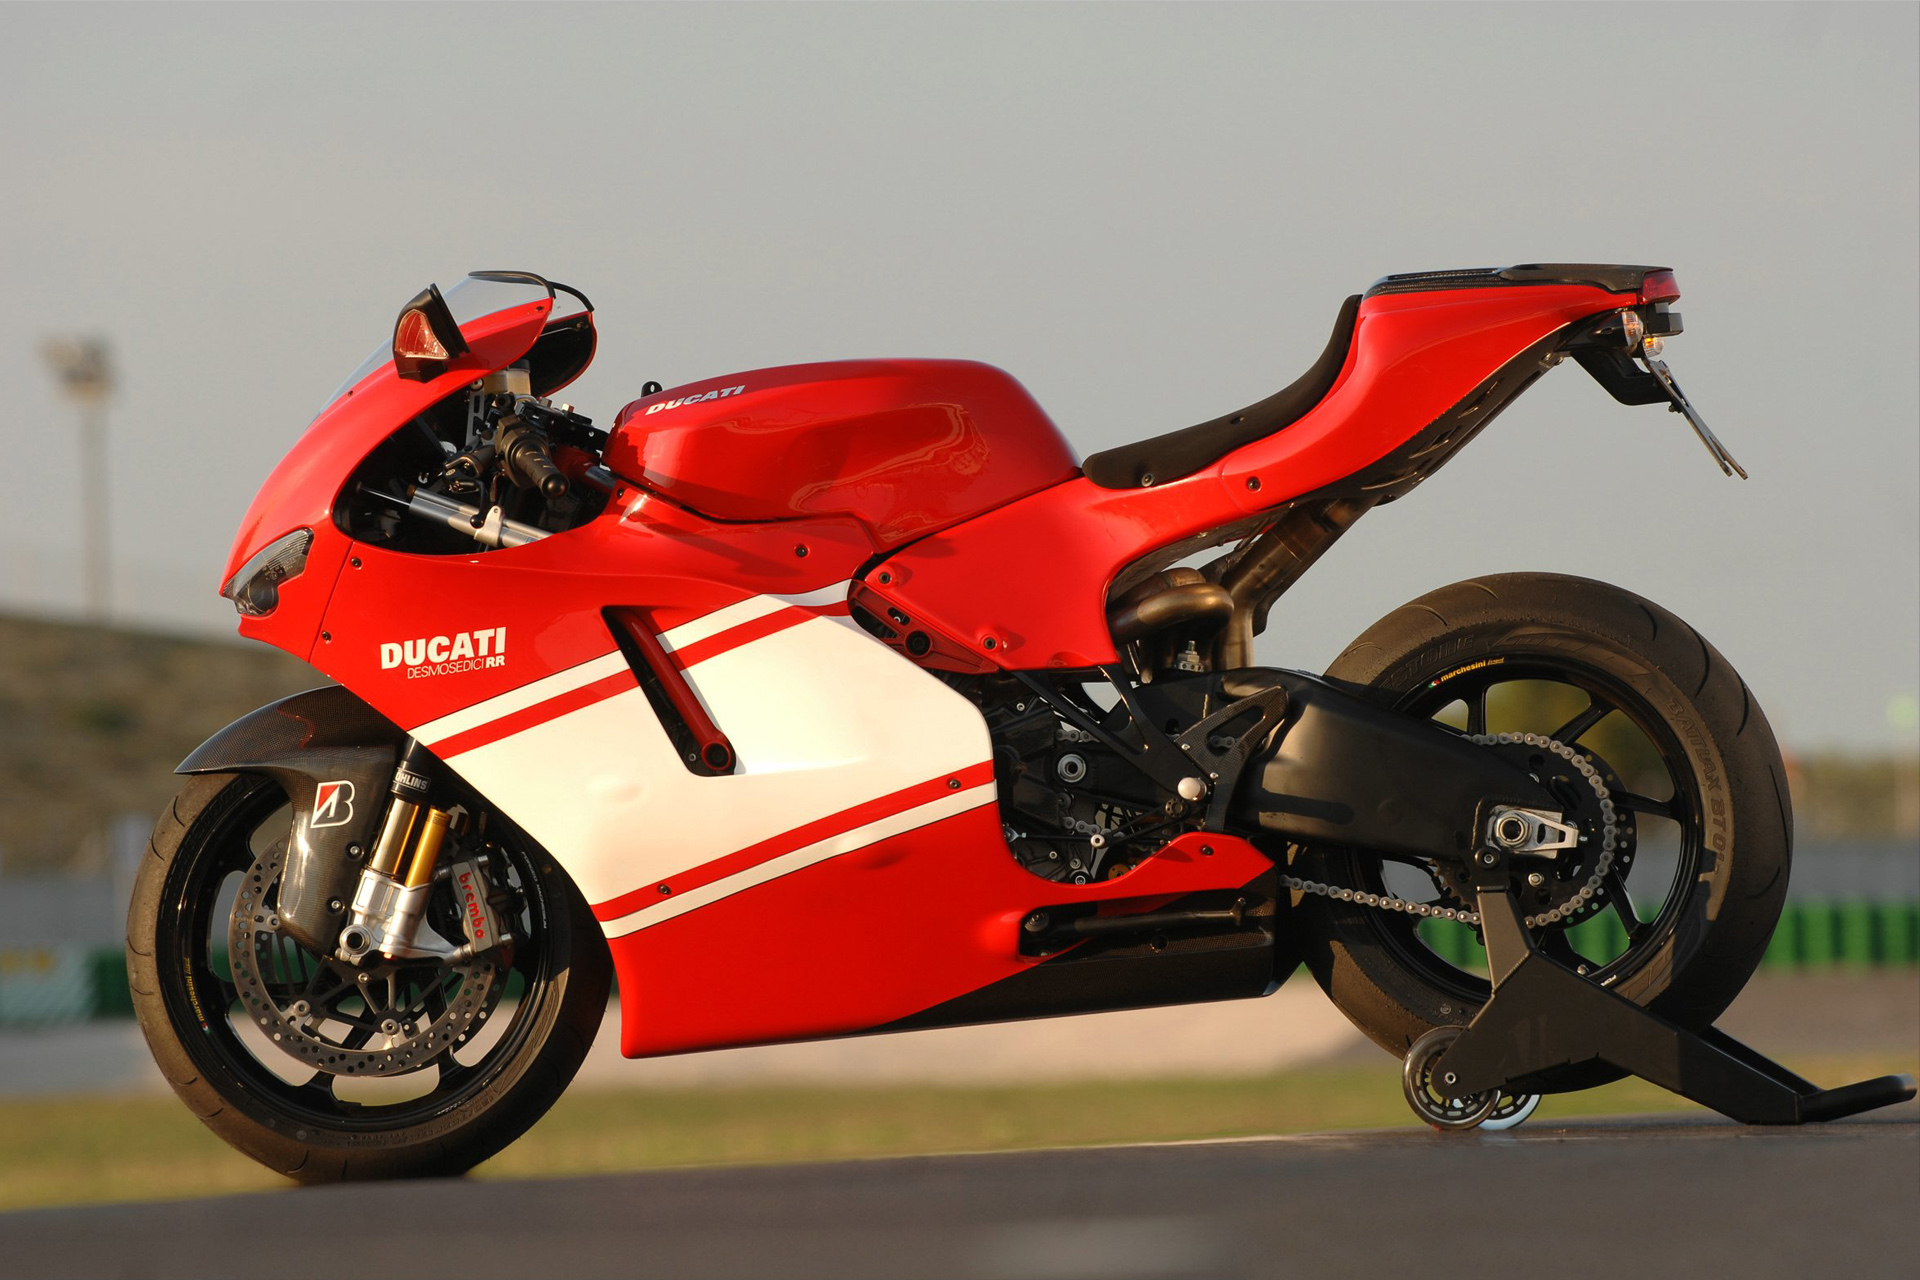 Ducati Desmosedici Rr Photos Photogallery With 5 Pics